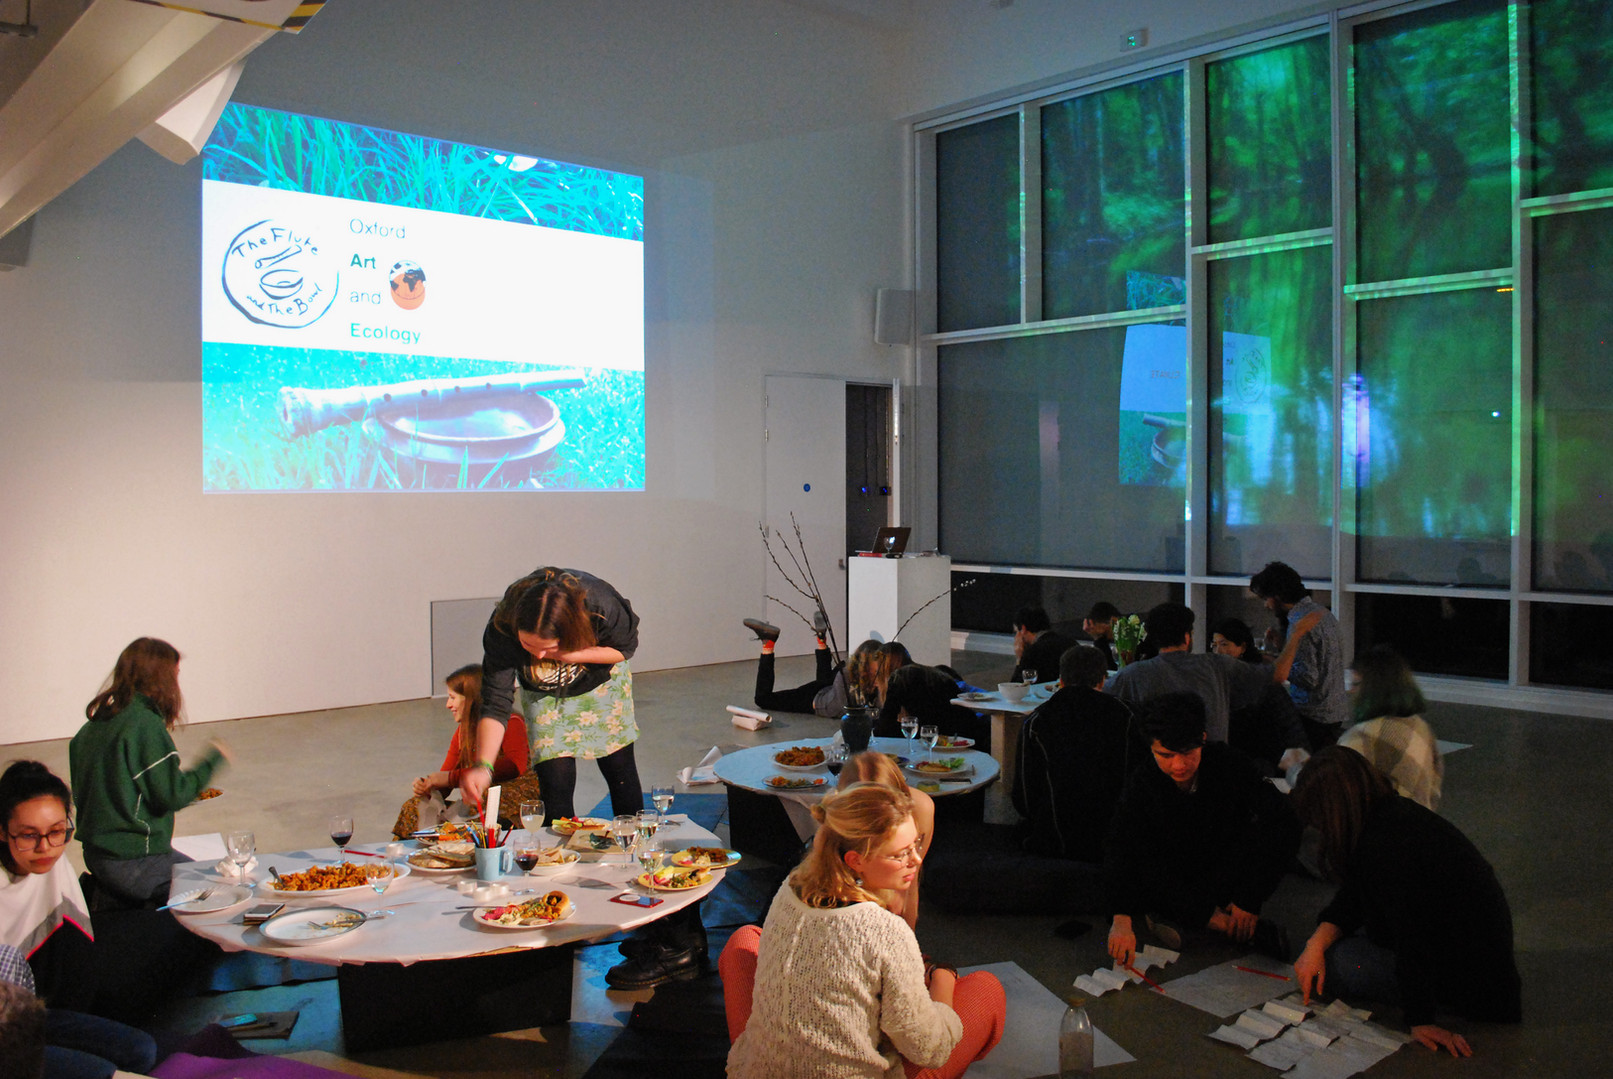 Workshop 2 was themed: A picnic in the Dark Forest of Art, Ecology and Economics